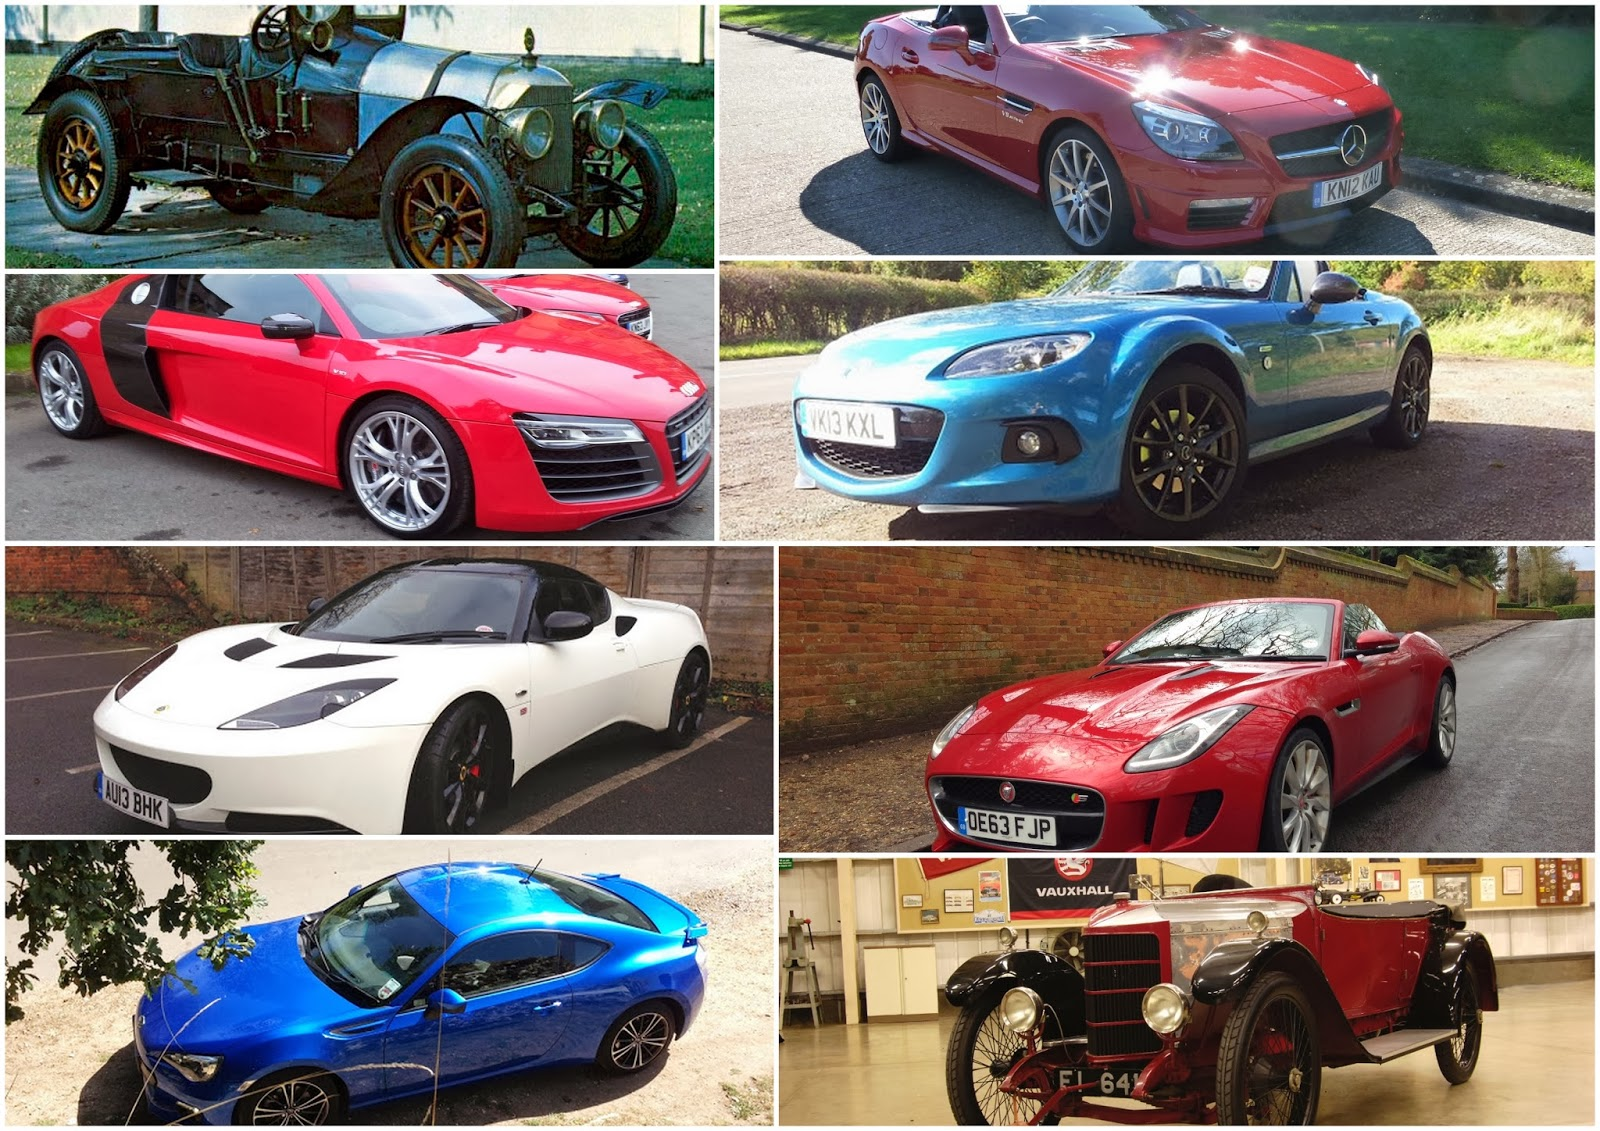 Speedmonkey Why Sports Cars Are Ace Vauxhall Car The First Was Arguably A In 1910 Motors Built Three Versions Of Called C 10 Which Designed To Run Prince